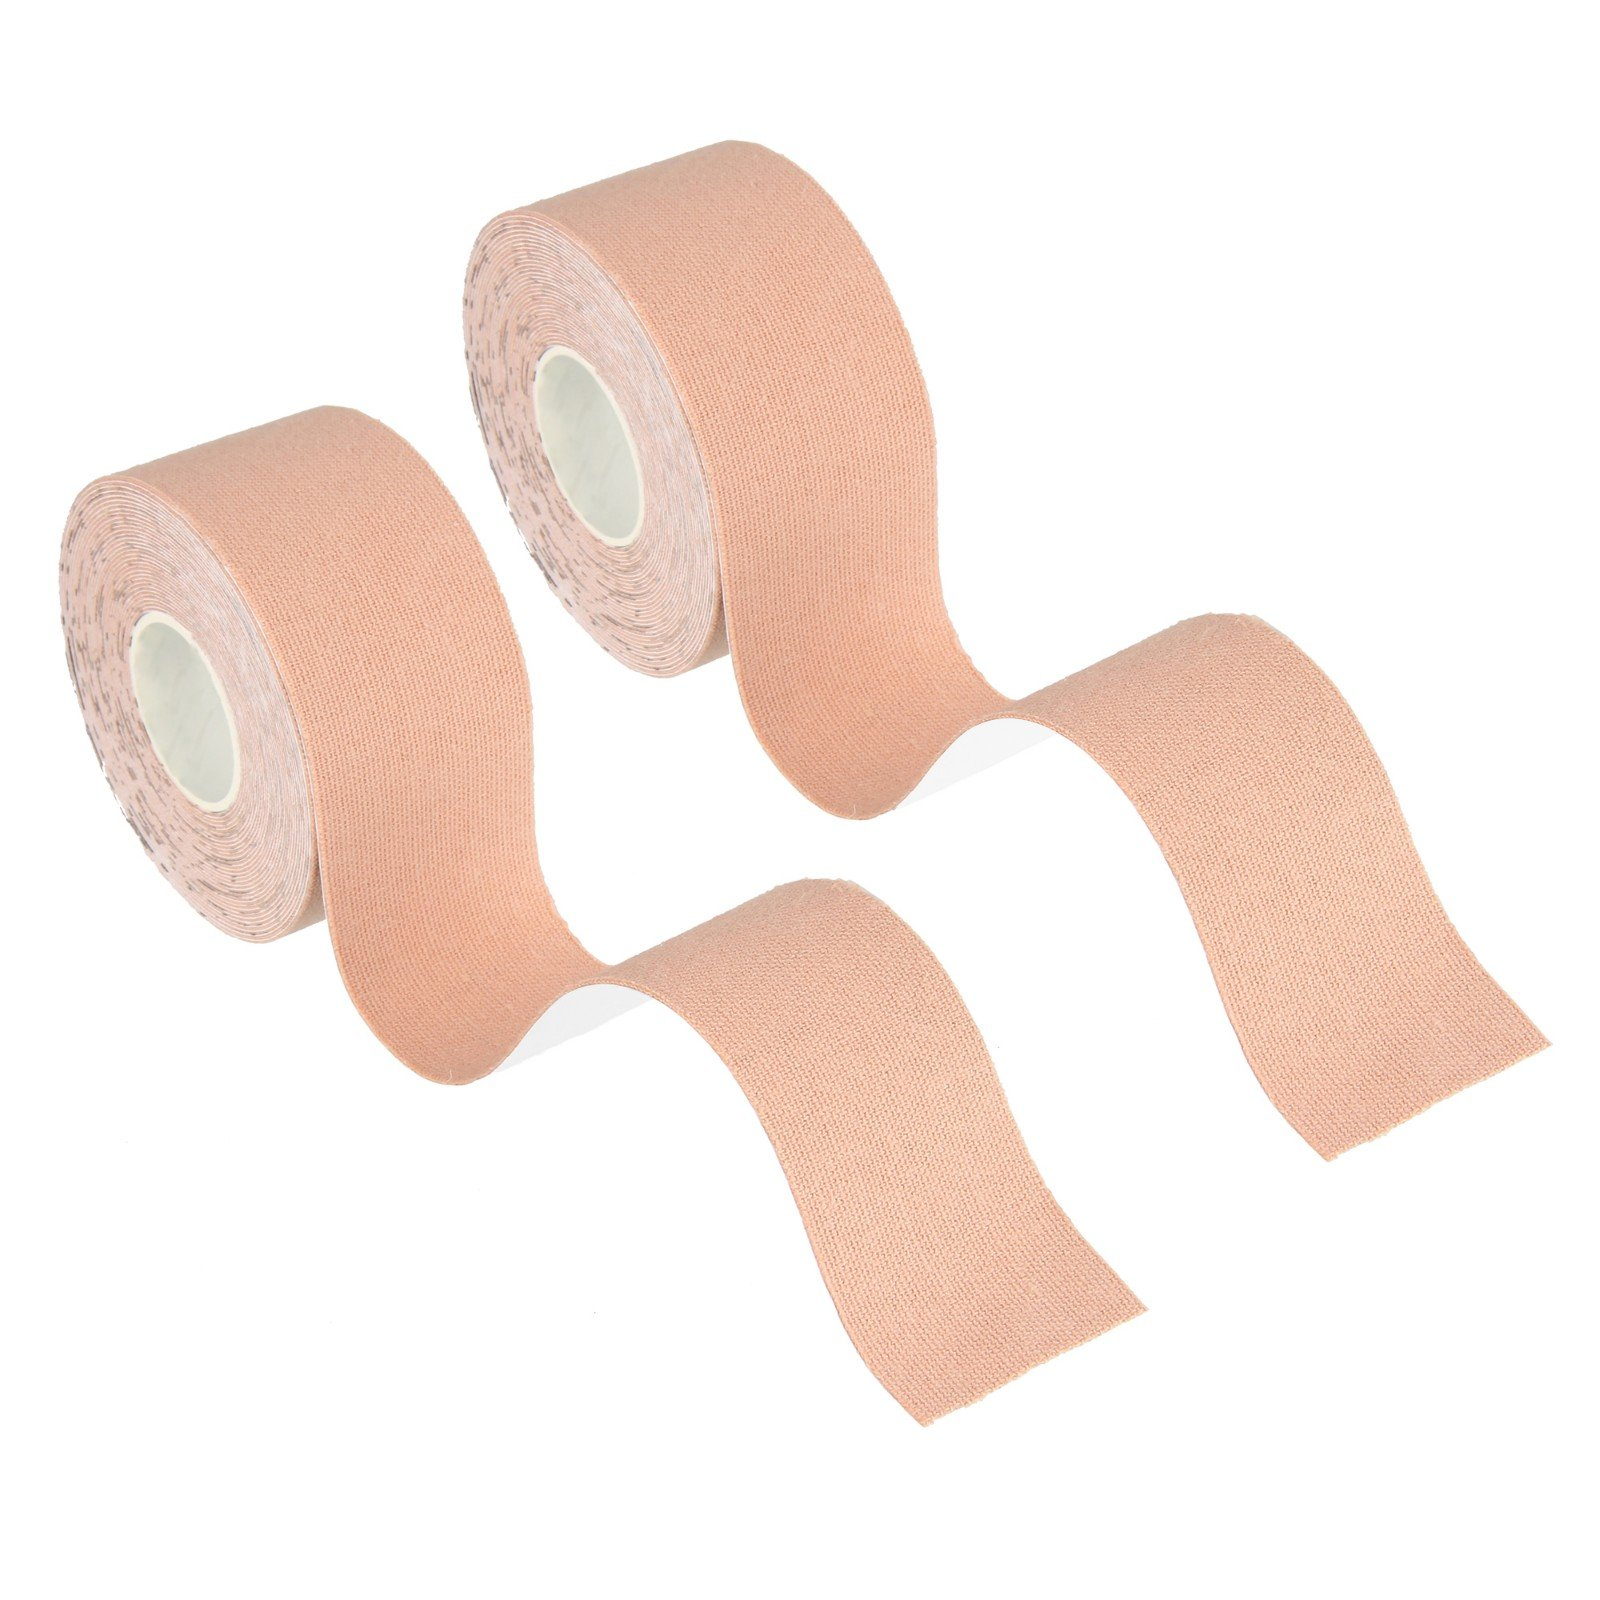 """Beauty7 Kinesiology Adhesive Tape 2 Rolls Uncut Cotton Elastic Breathable Waterproof Muscle Support for Athletic Sports Aid Recovery and Physio Therapy Knee Shoulder Elbow (Skin Tone, 1""""W x 16.4'L)"""